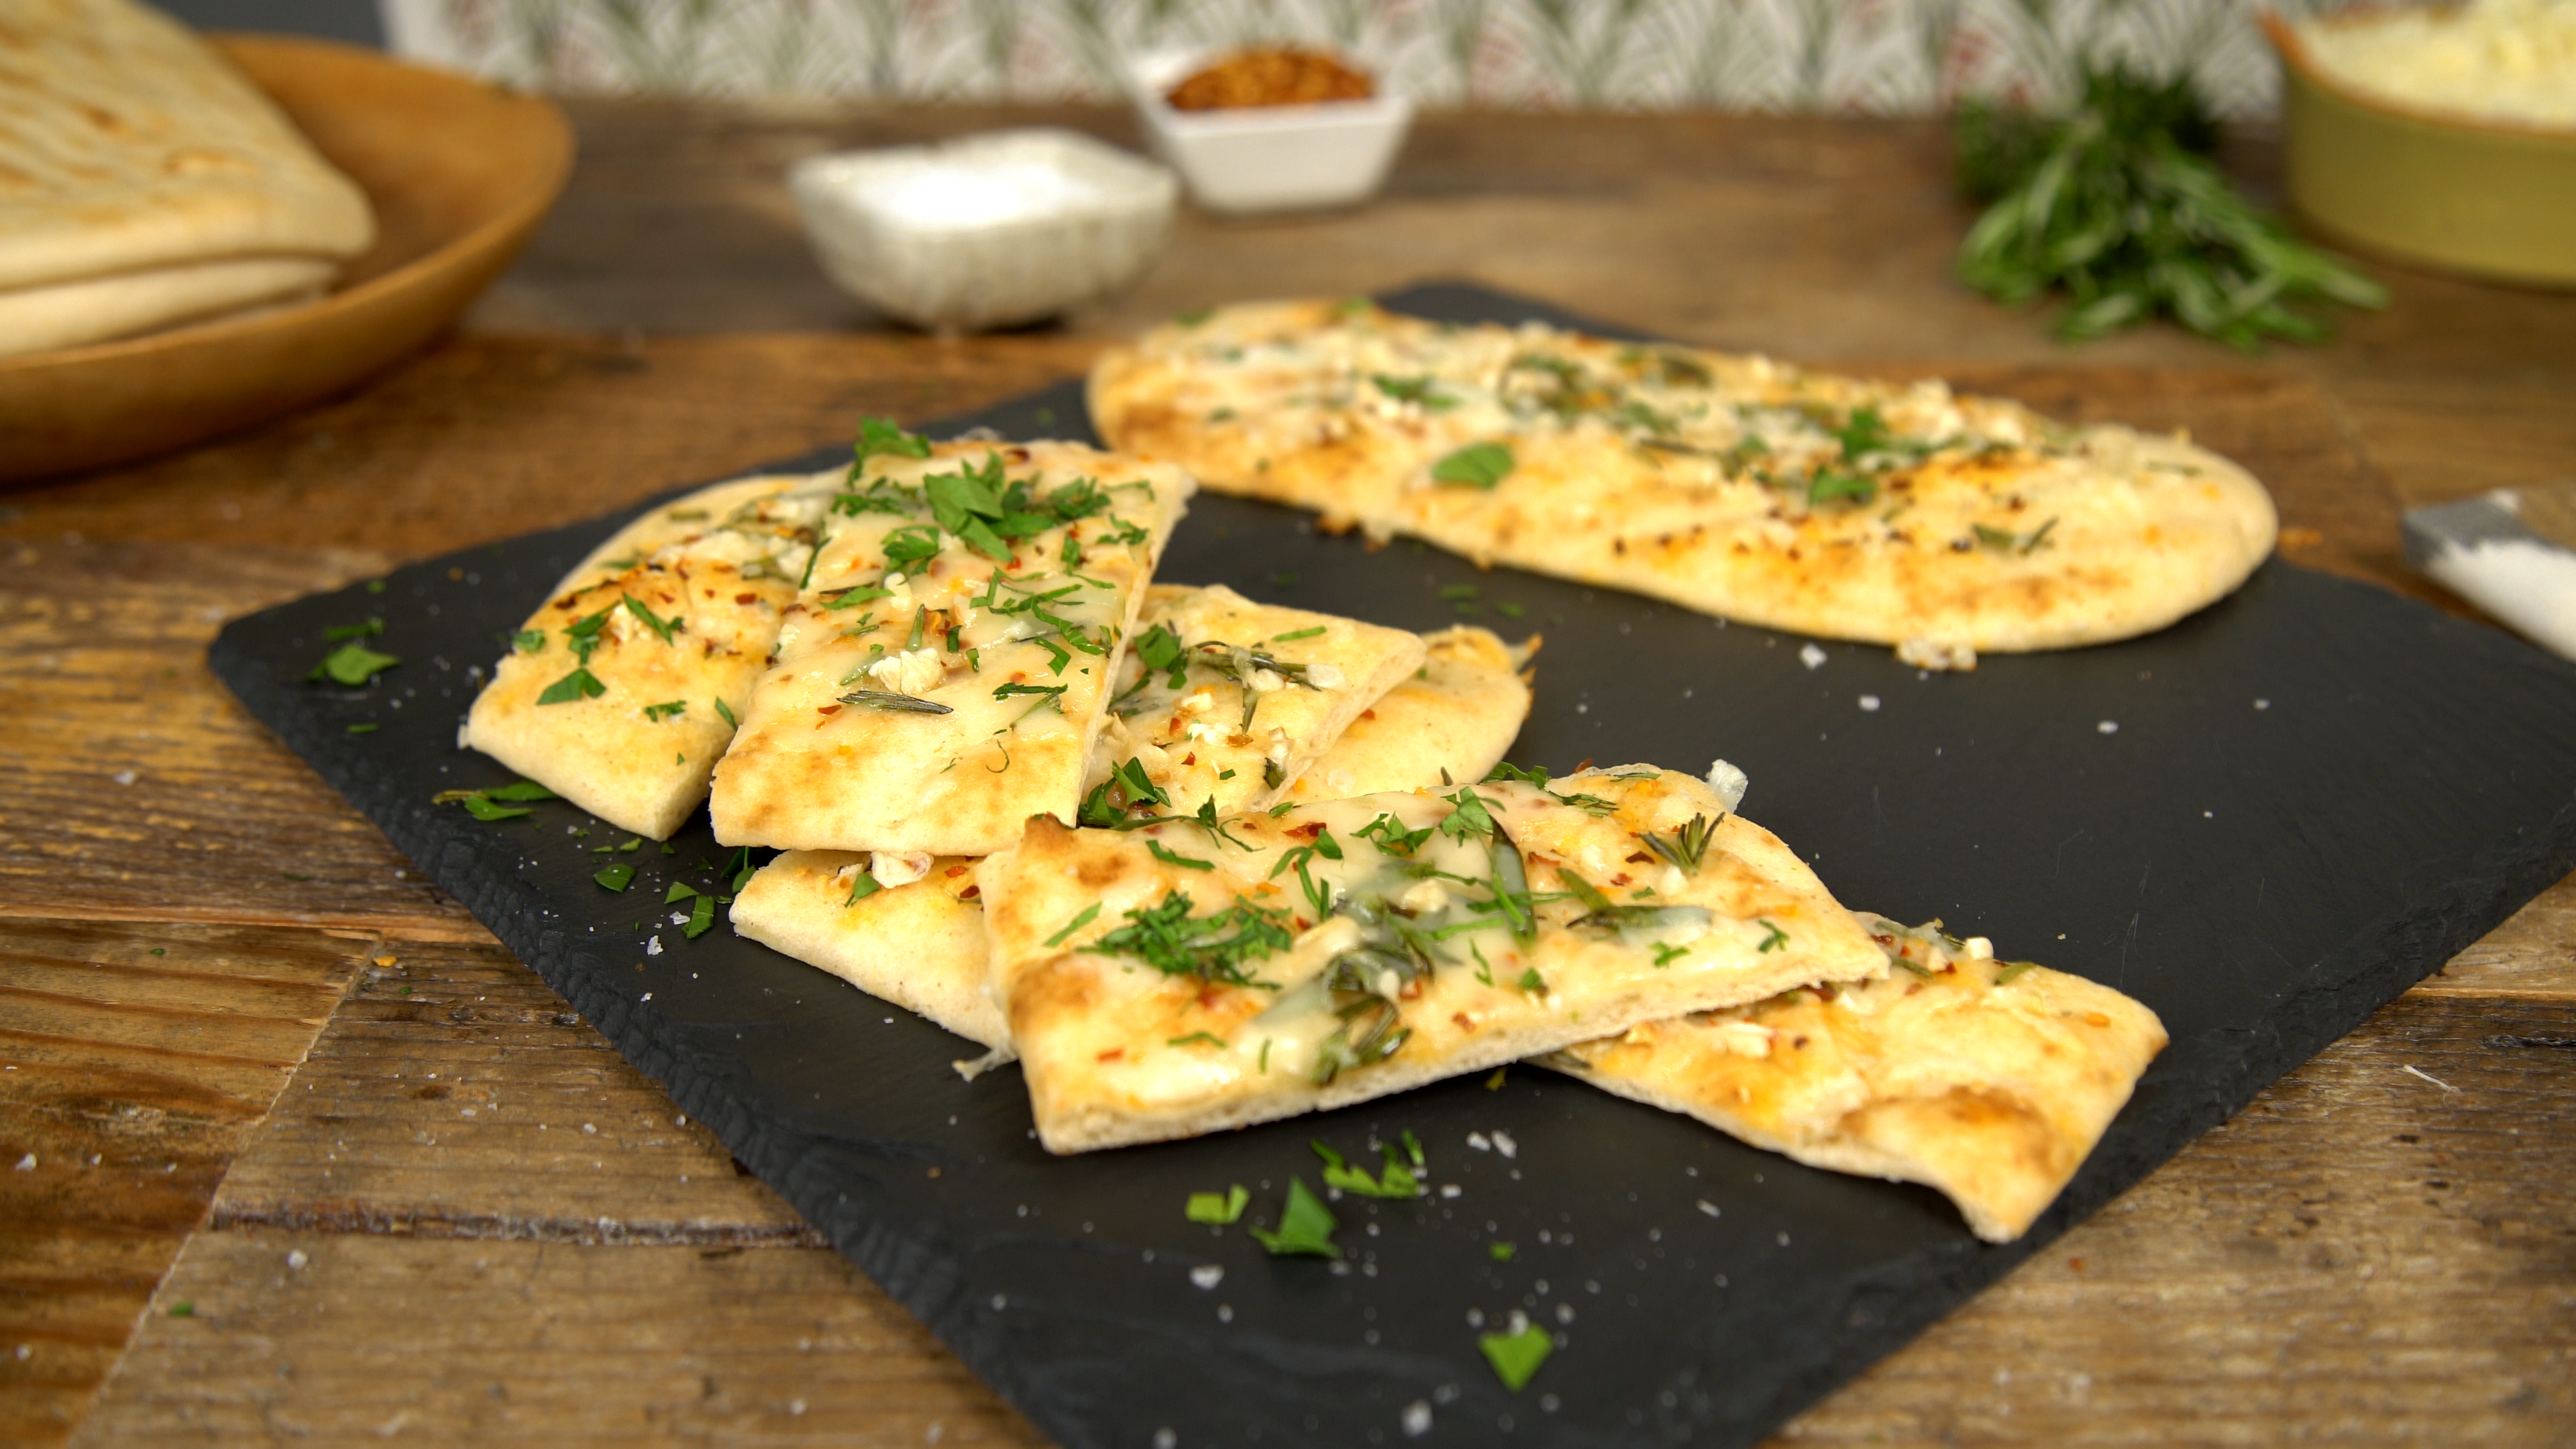 Mini Cheesy Naan Bread Tastemade